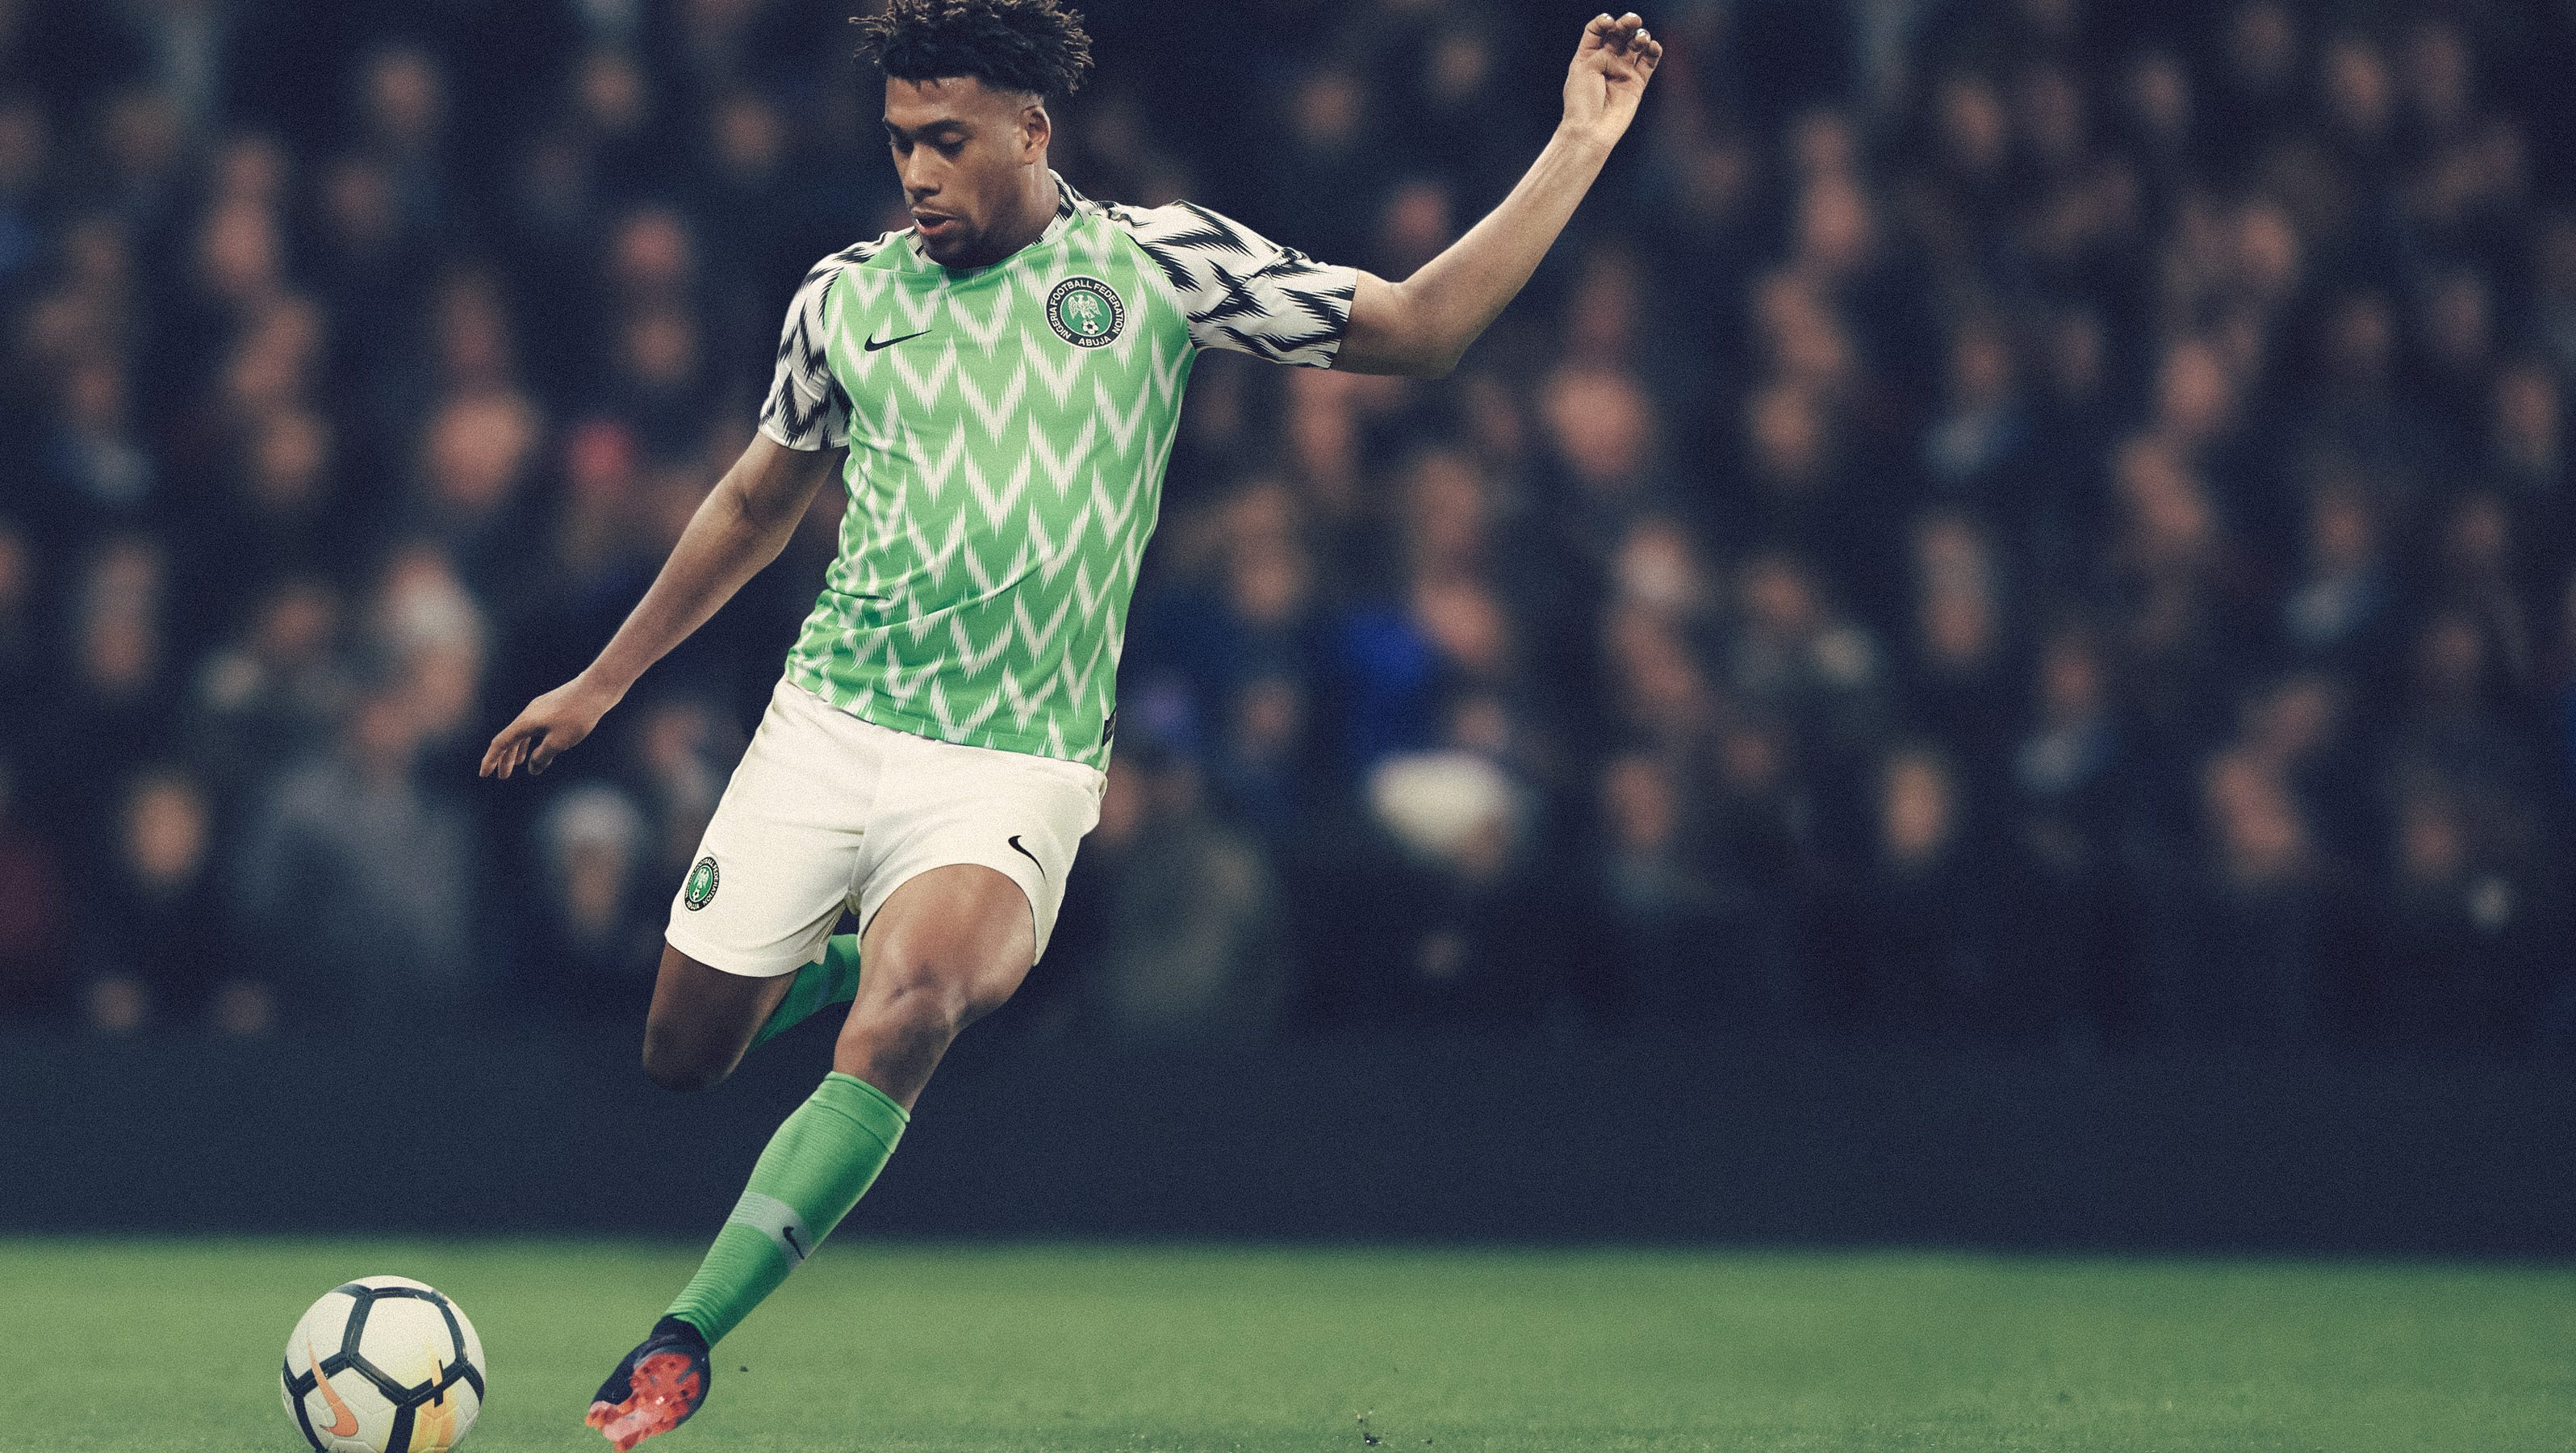 Nigeria Nike World Cup soccer jersey pre-order sales top three million —  Quartz Africa 30a069e9b